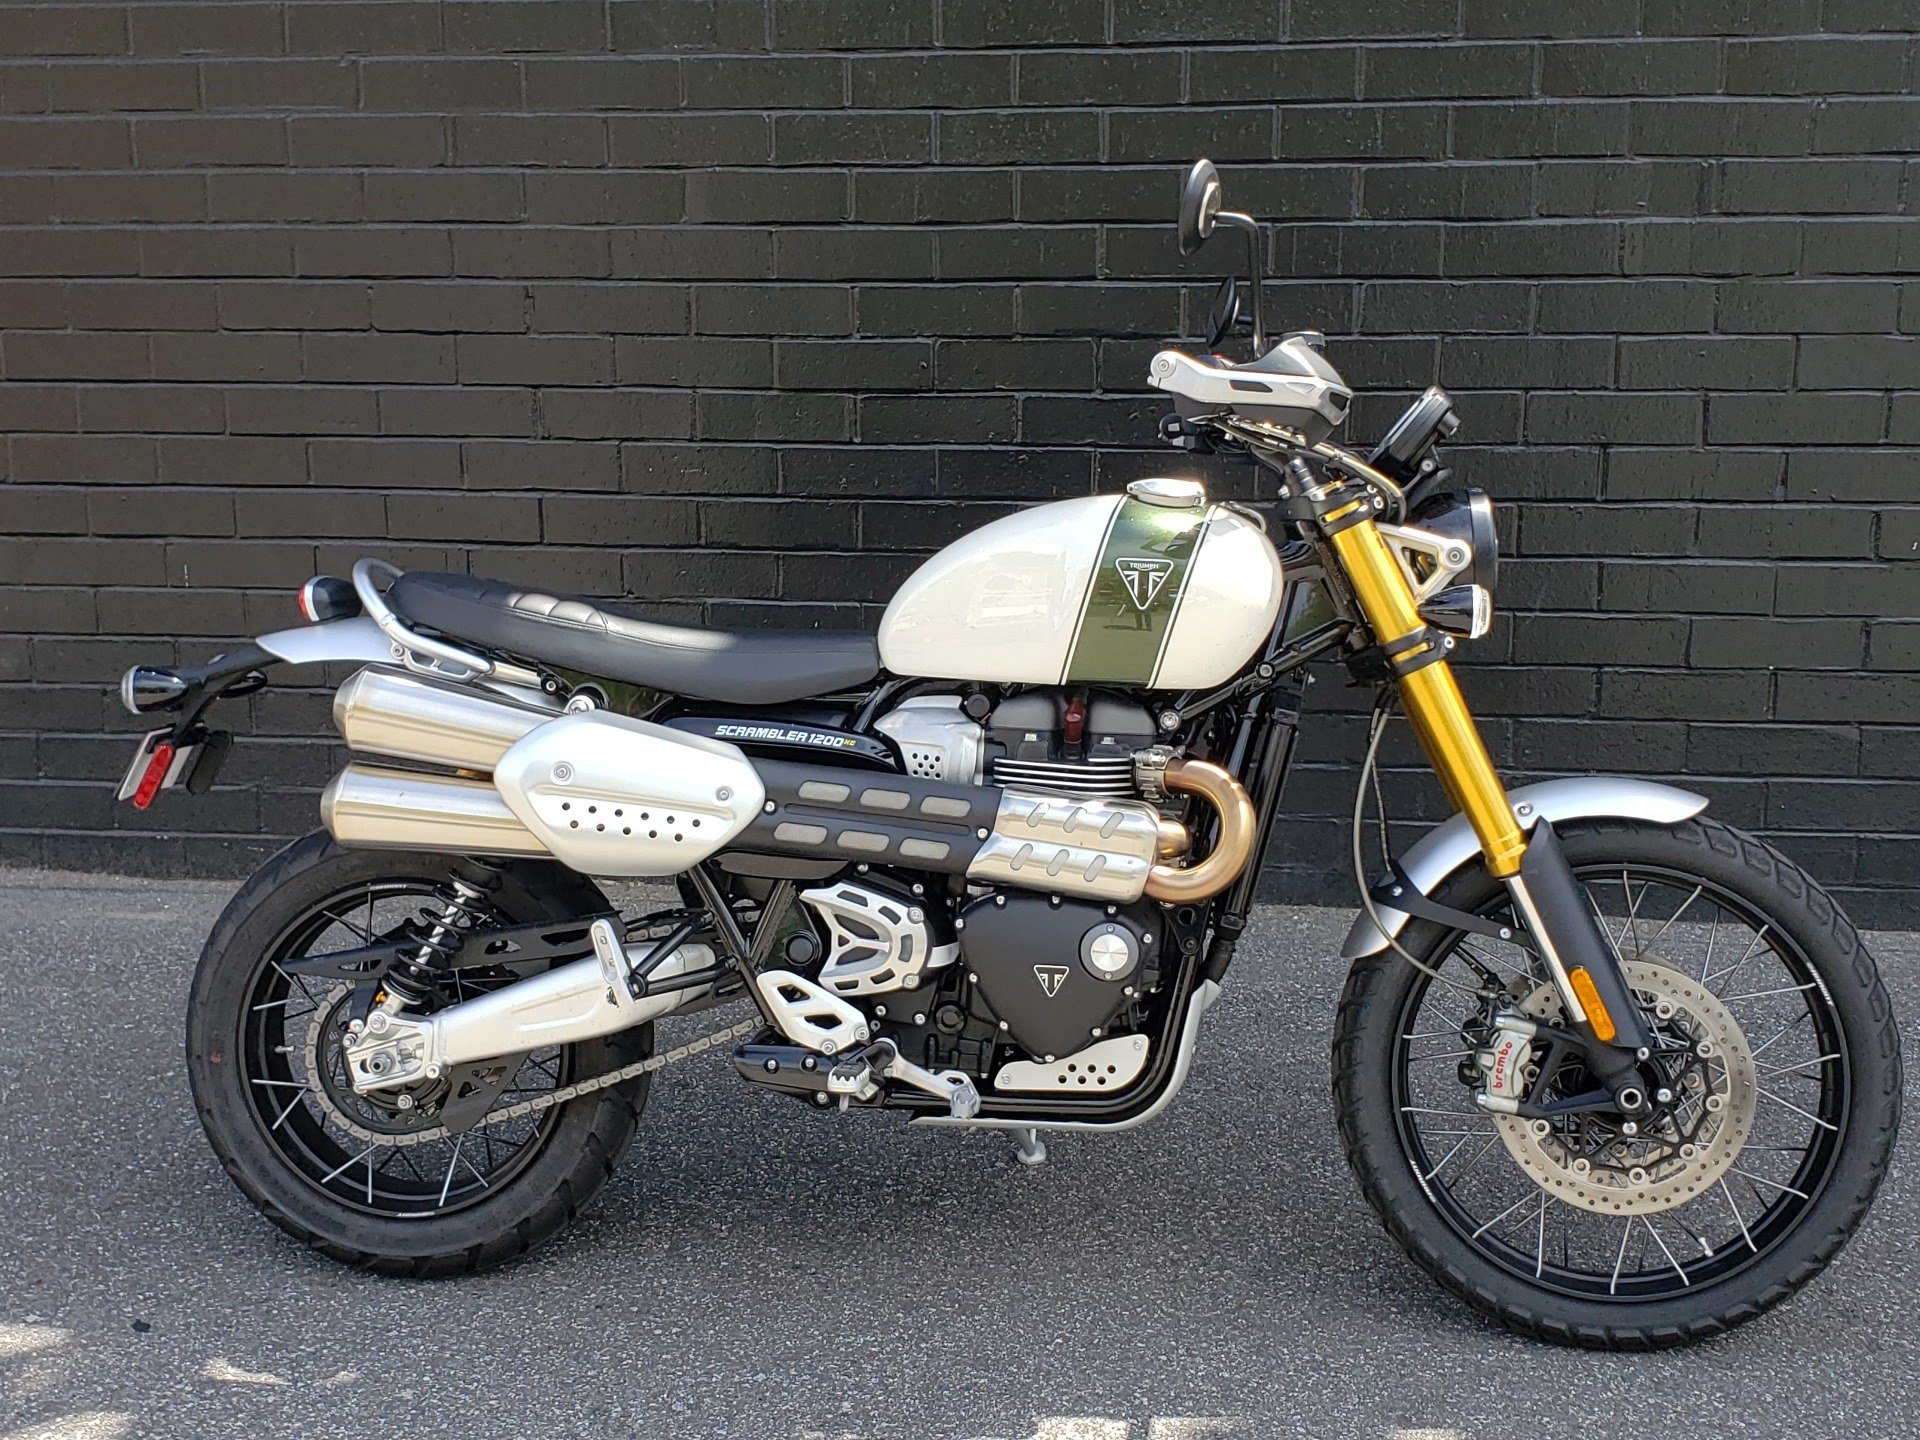 2019 Triumph Scrambler 1200 XE in San Jose, California - Photo 1